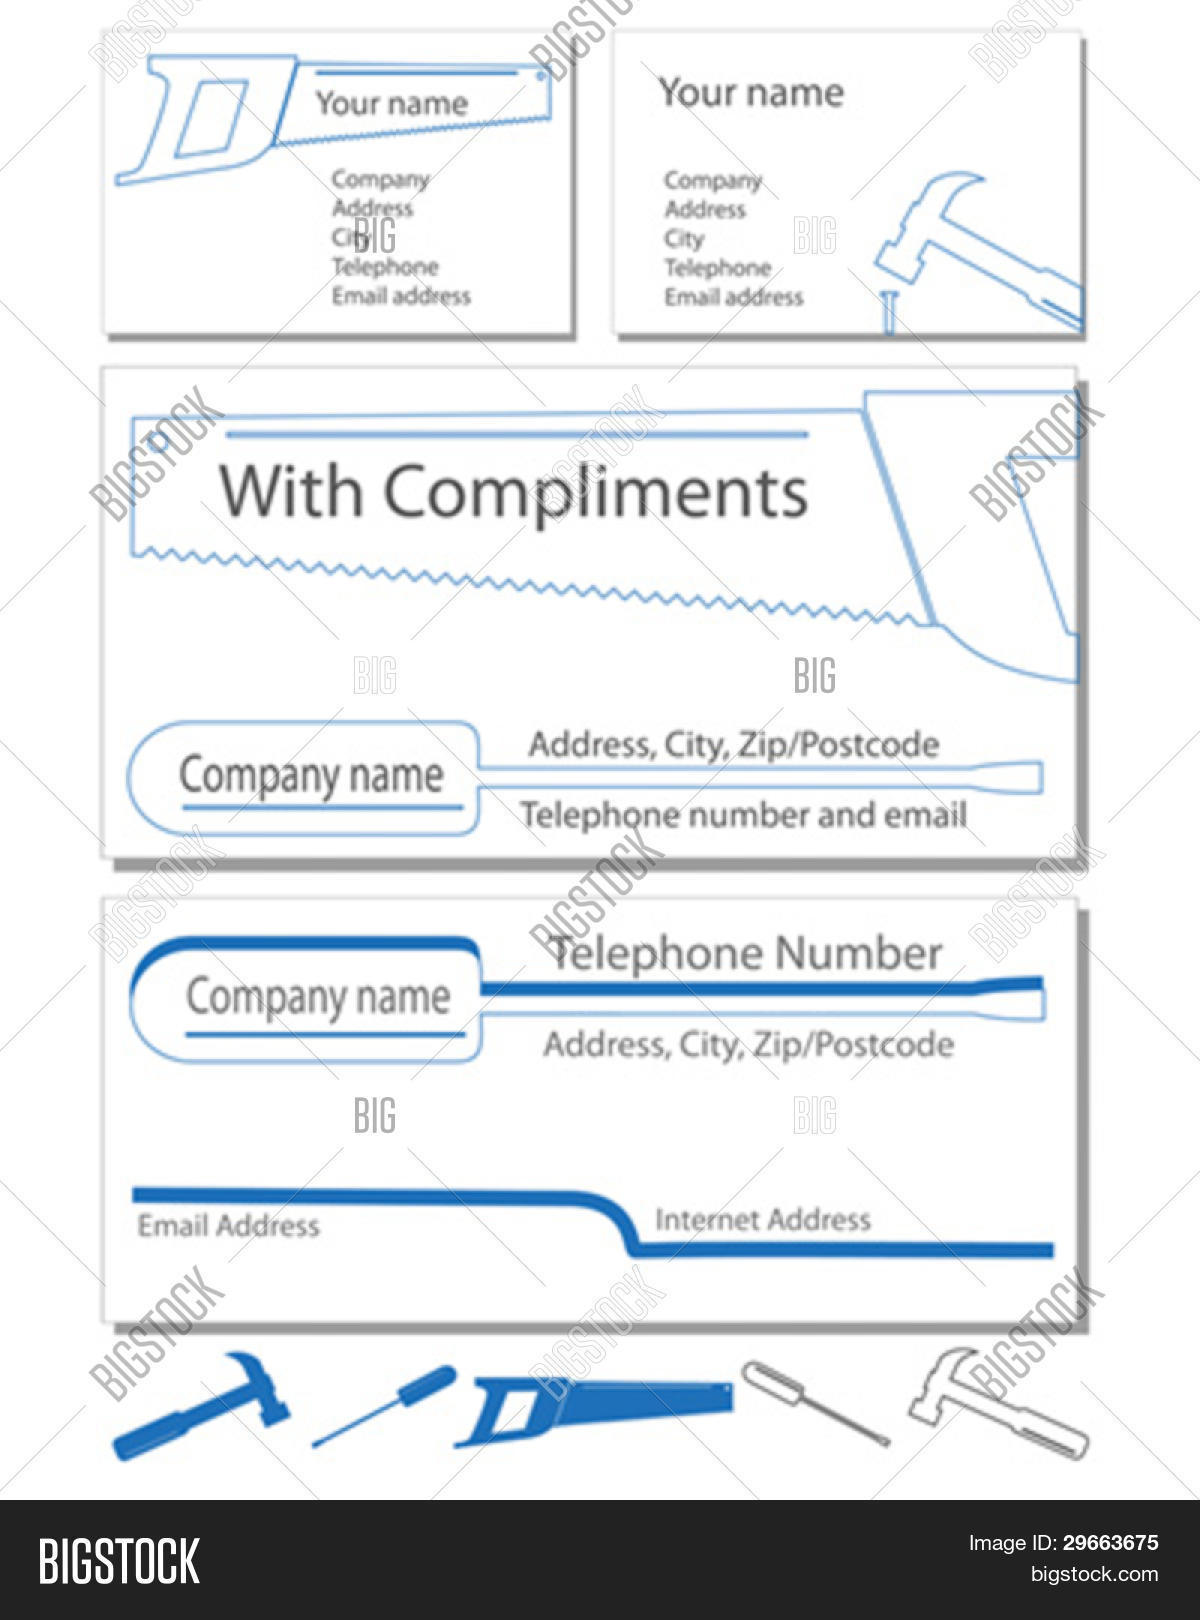 Business Card Telephone Format Image collections - Card Design And ...